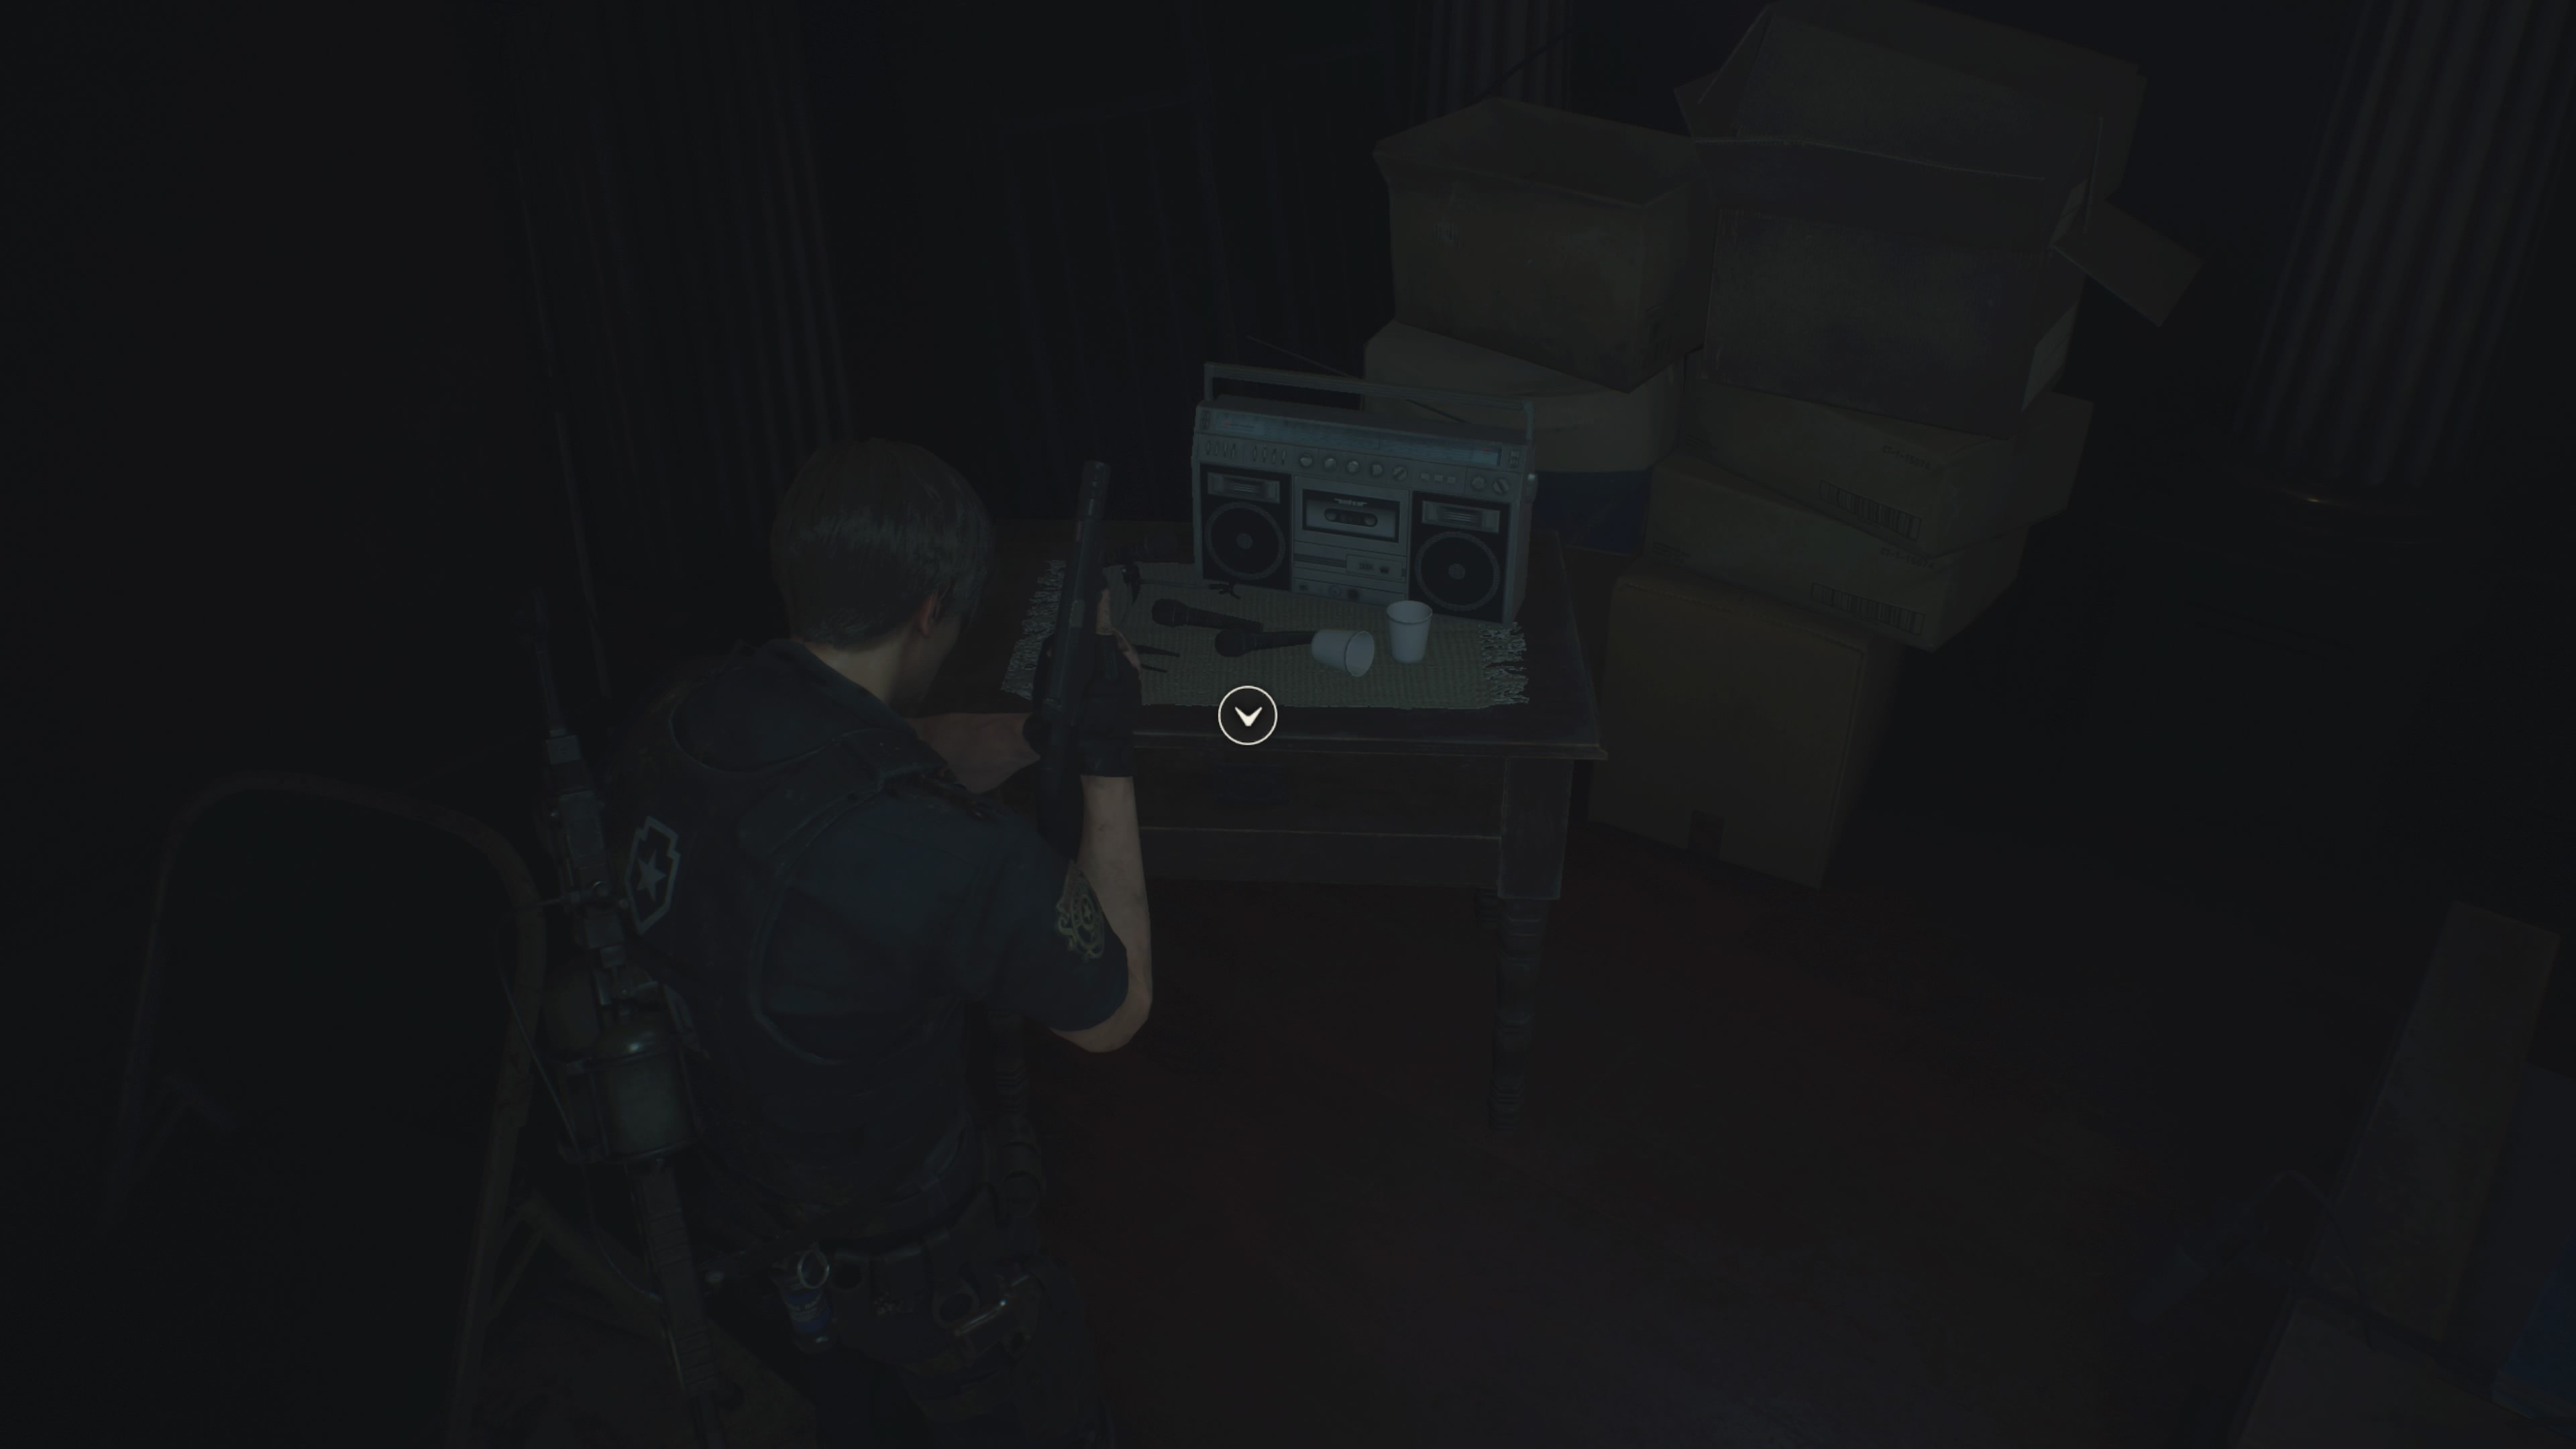 Where to find Hiding Place Film images in Resident Evil 2